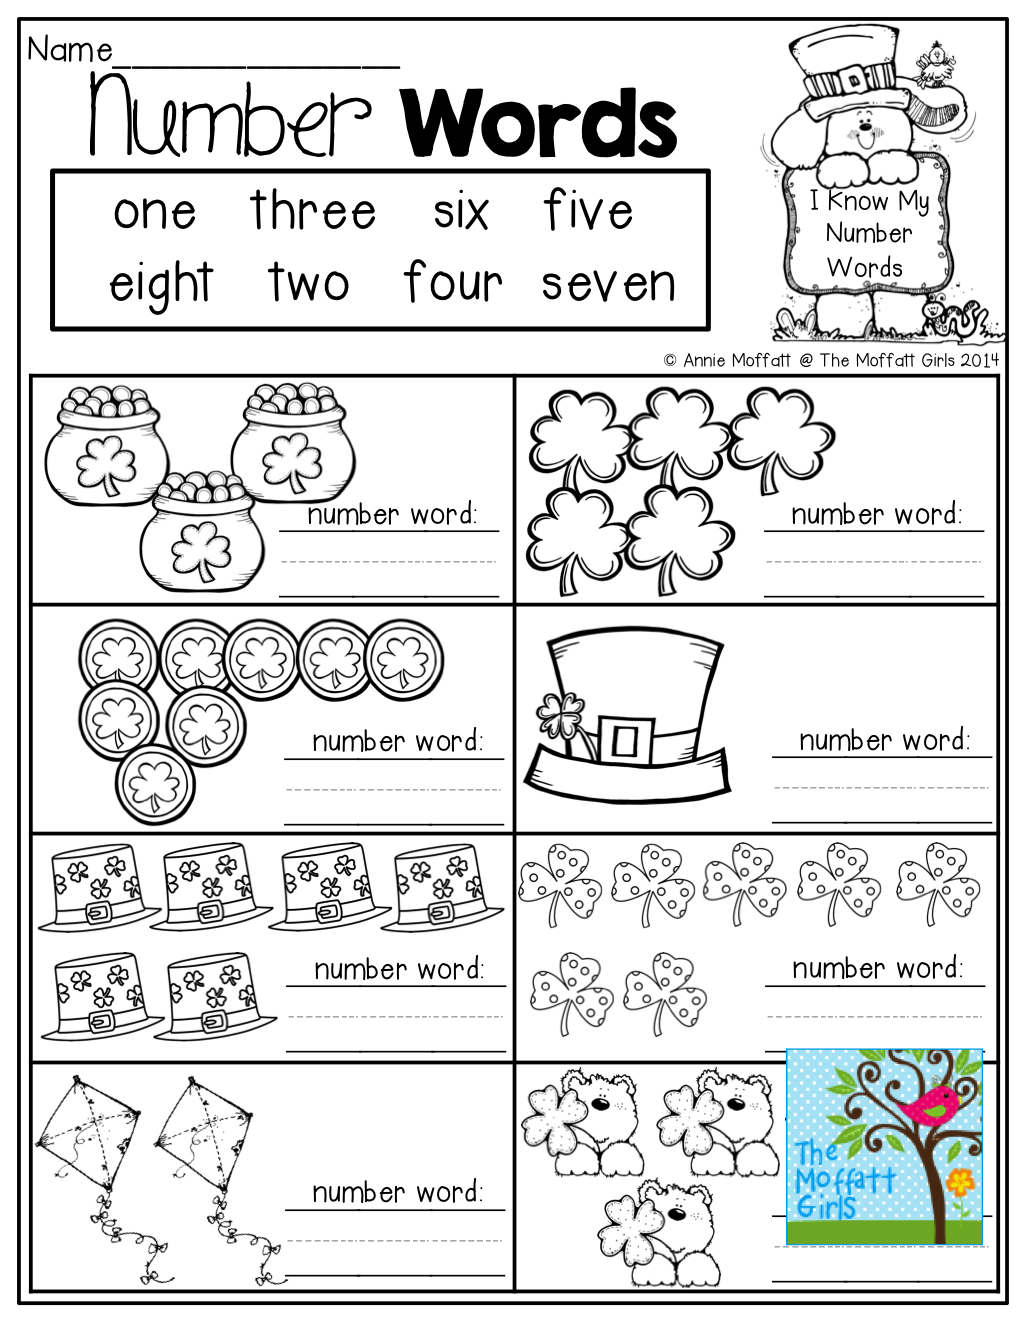 NUMBER WORD practice! Count the items and write the number words ...